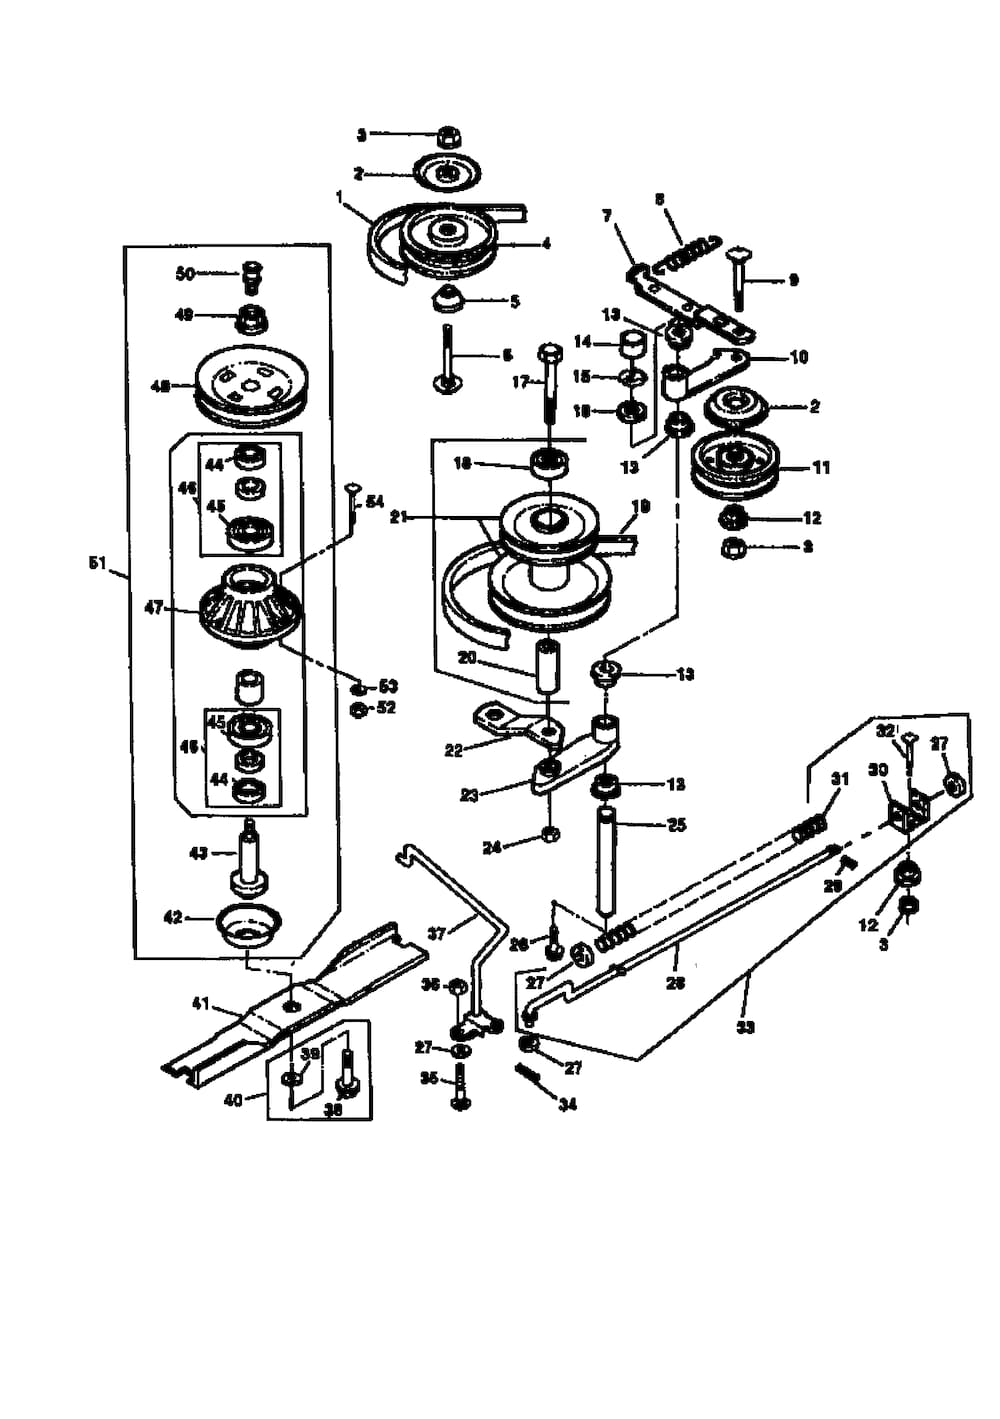 John Deere Riding Lawn Mower Parts. Mower Drive Beltsheavesspindles Diagram Parts List For. John Deere. John Deere La140 Steering Parts Diagram At Scoala.co